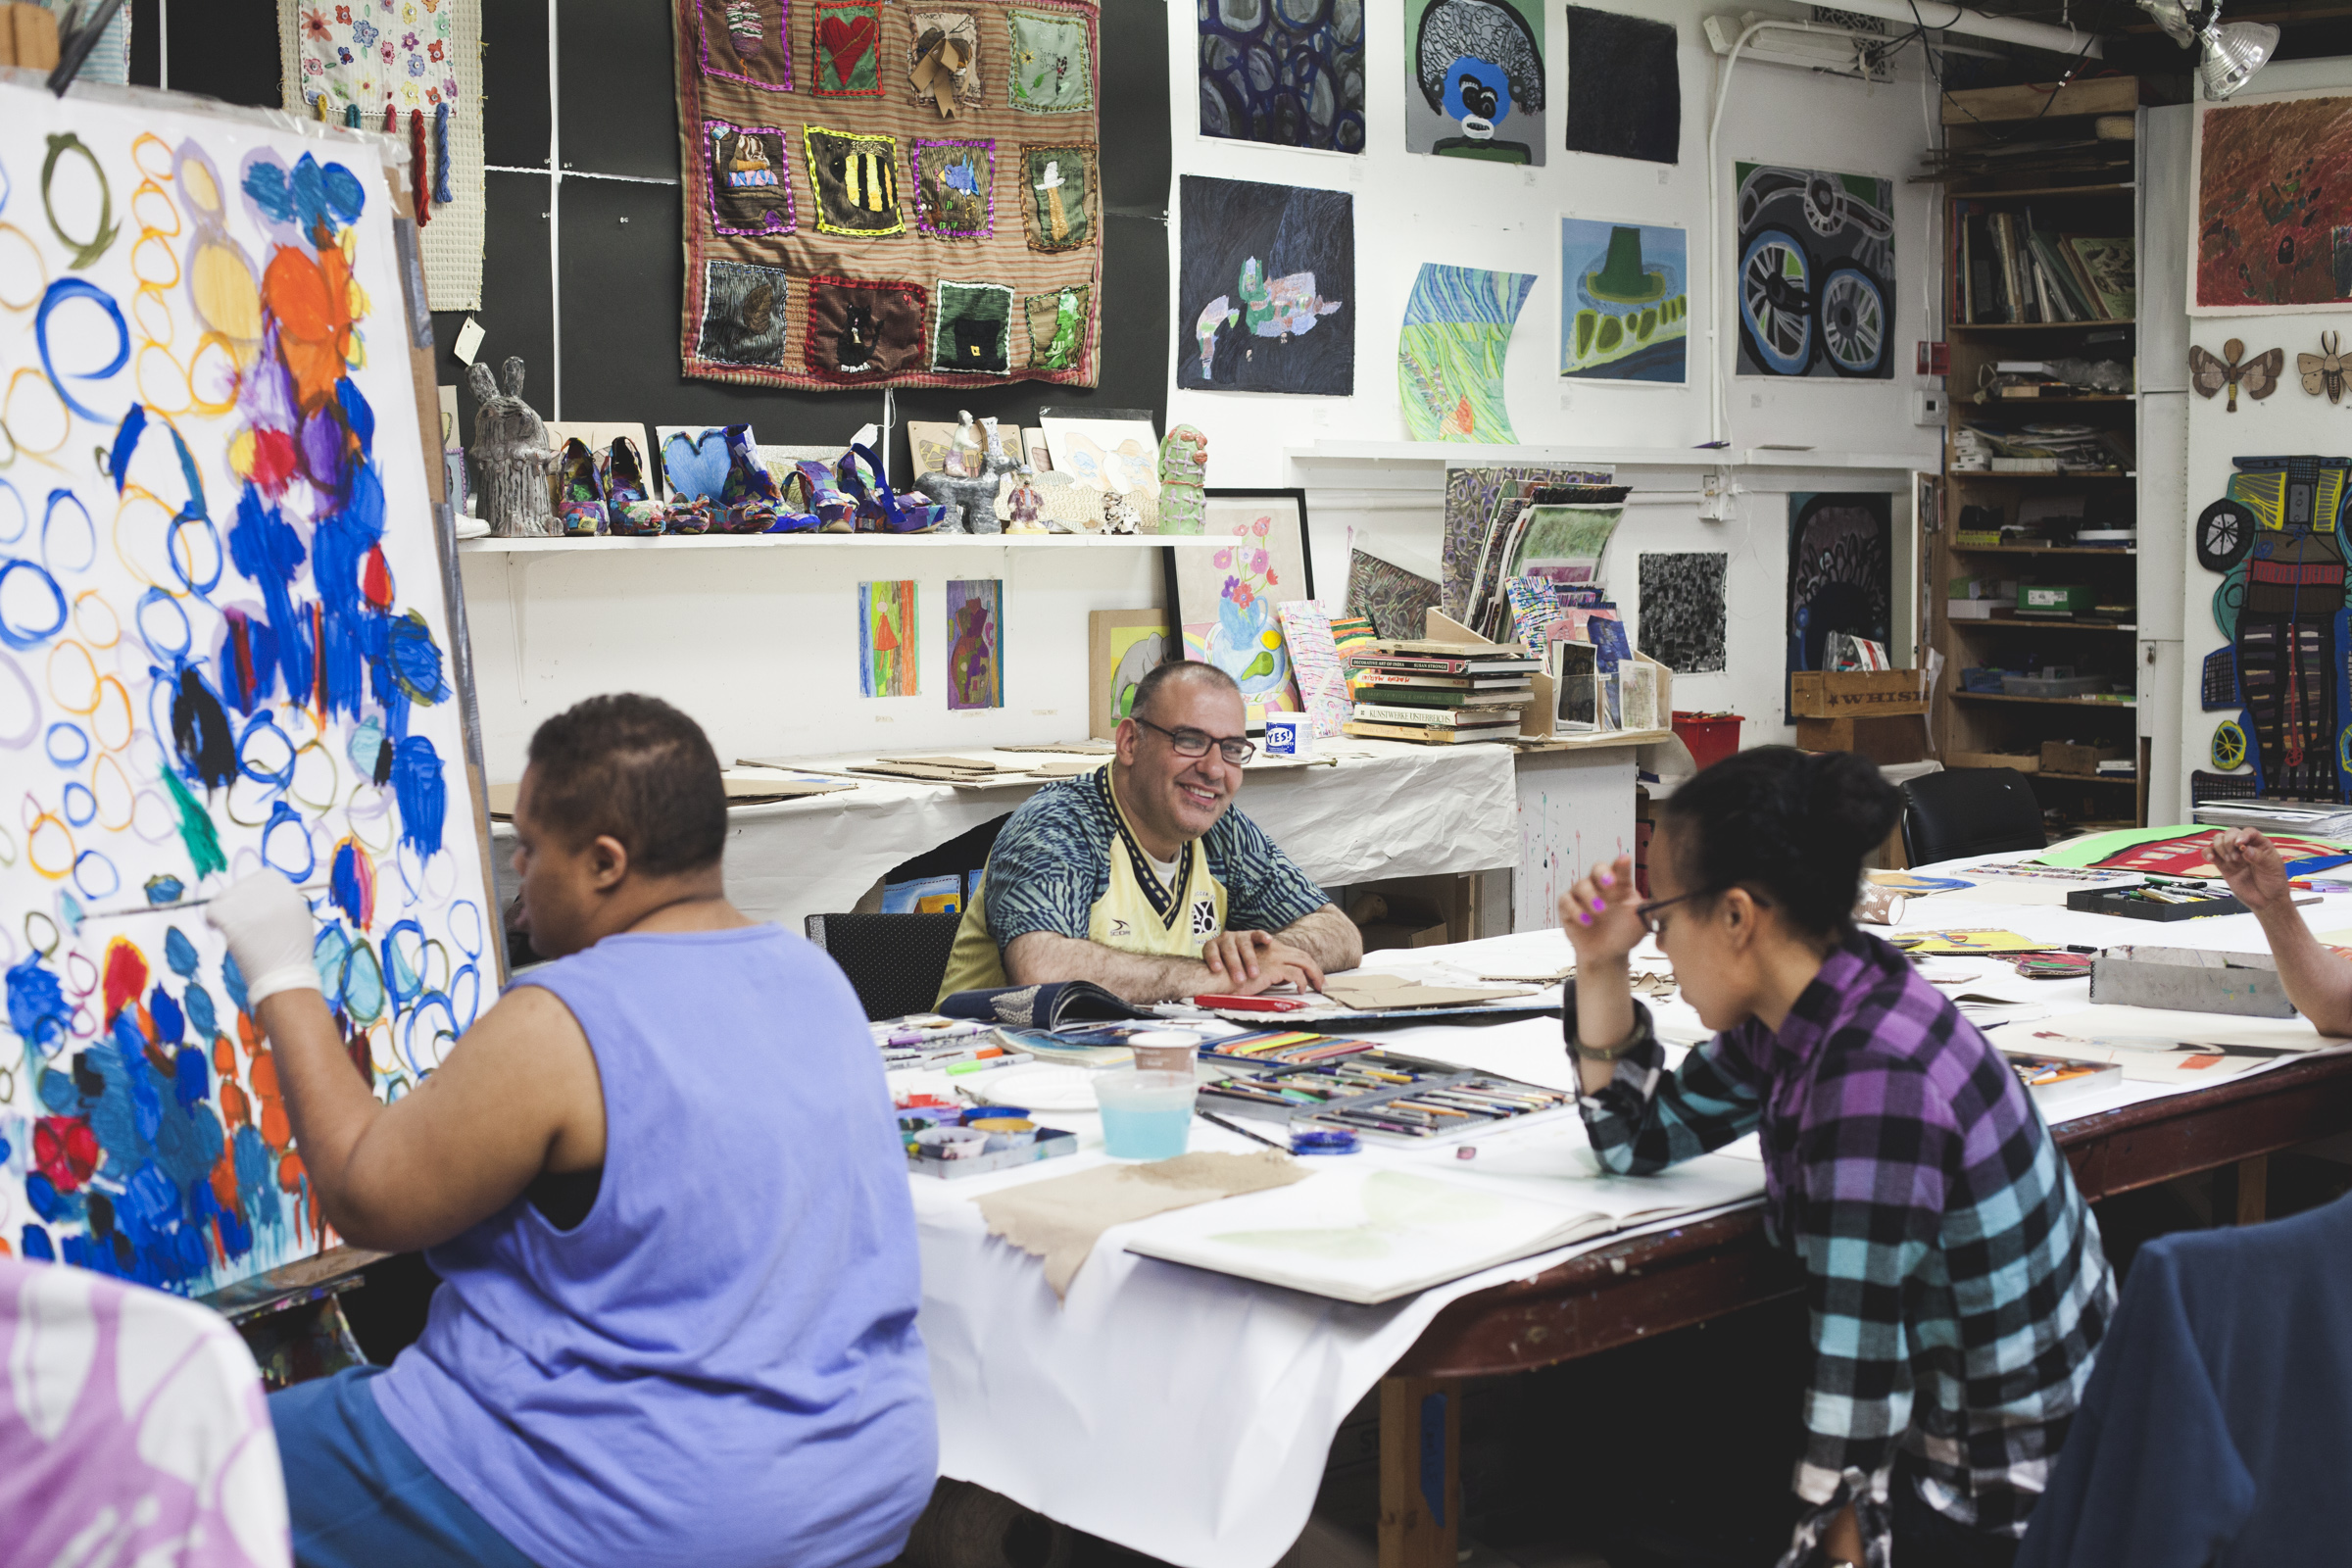 Creativity Explored artists Taneya Lovelace, Hector Lopez, and Musette Perkins.